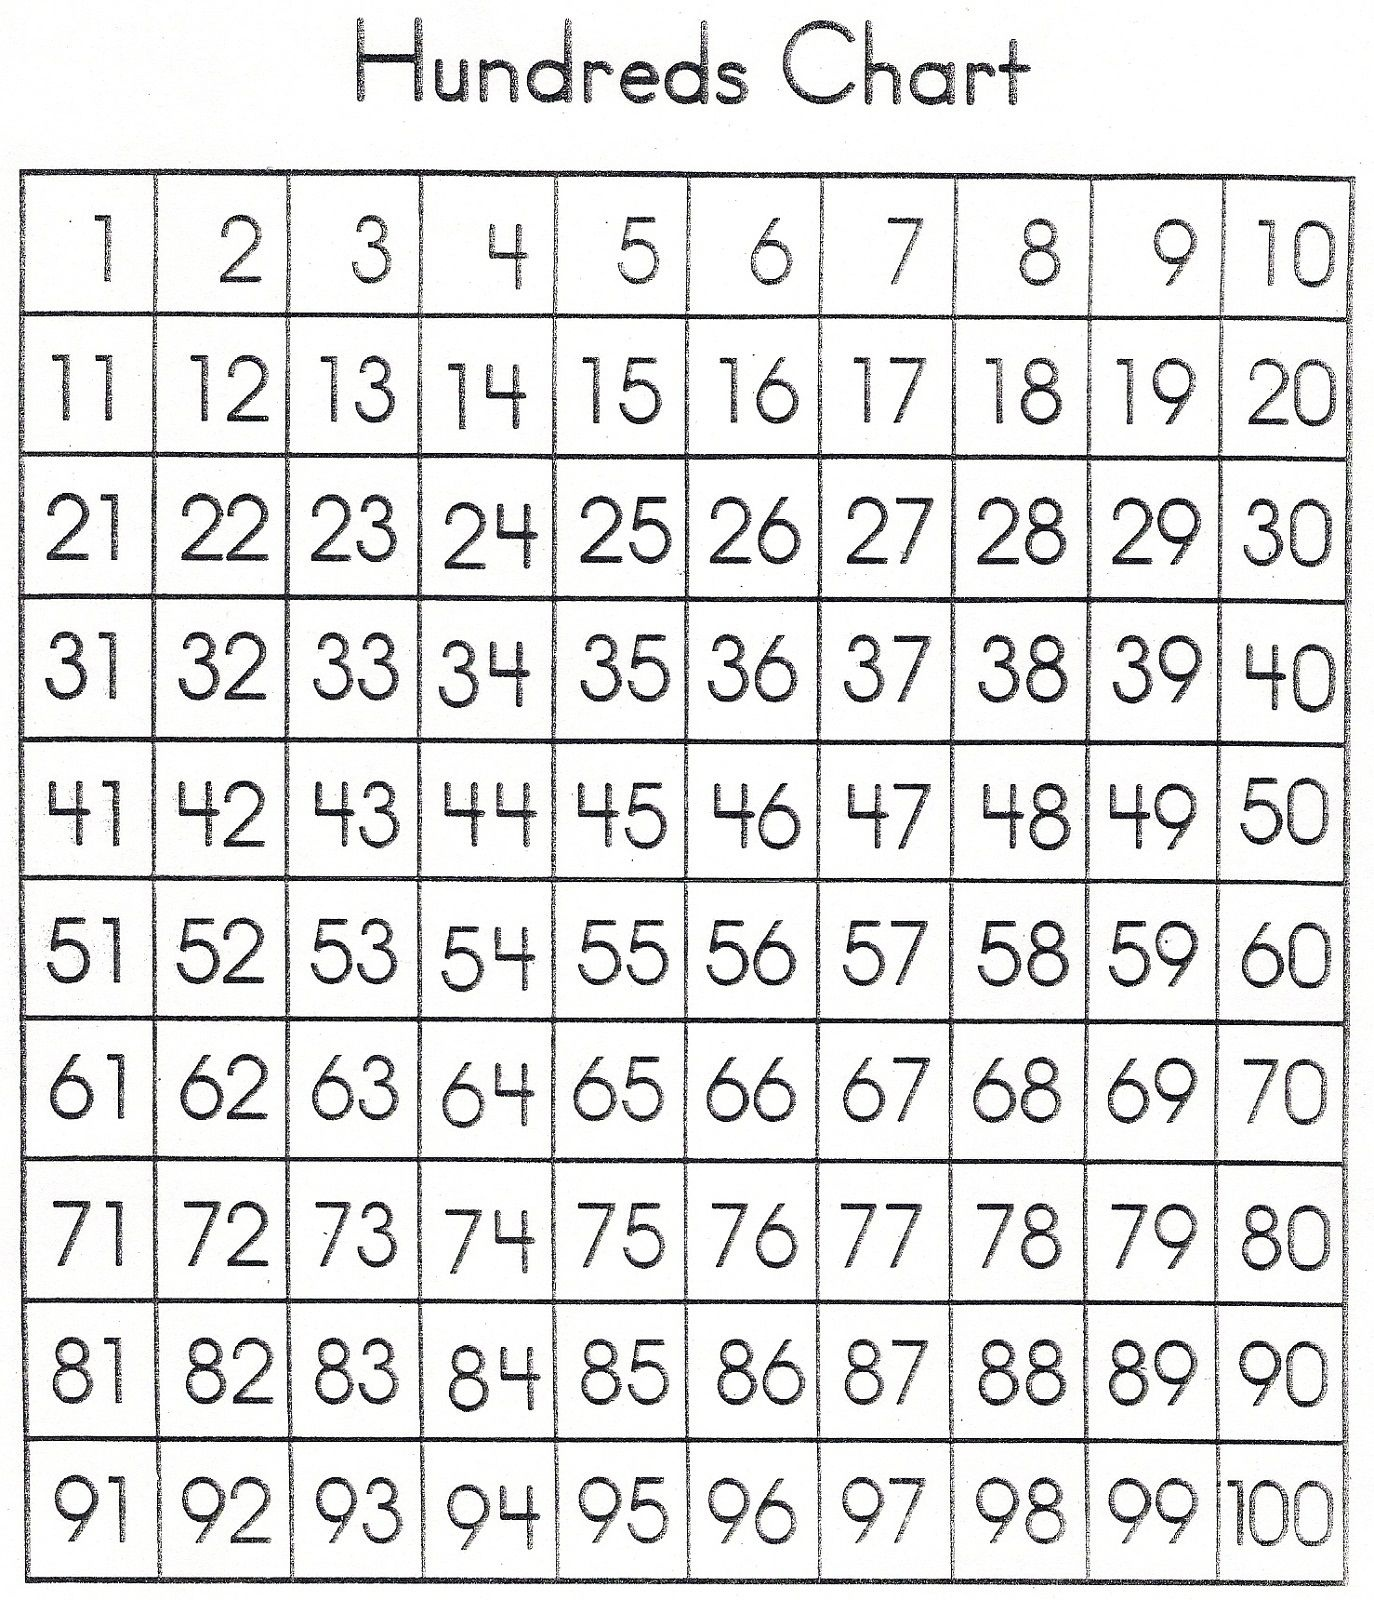 Number Sheet 1-100 To Print | Math Worksheets For Kids | 100 Number - Free Printable Number Chart 1 100